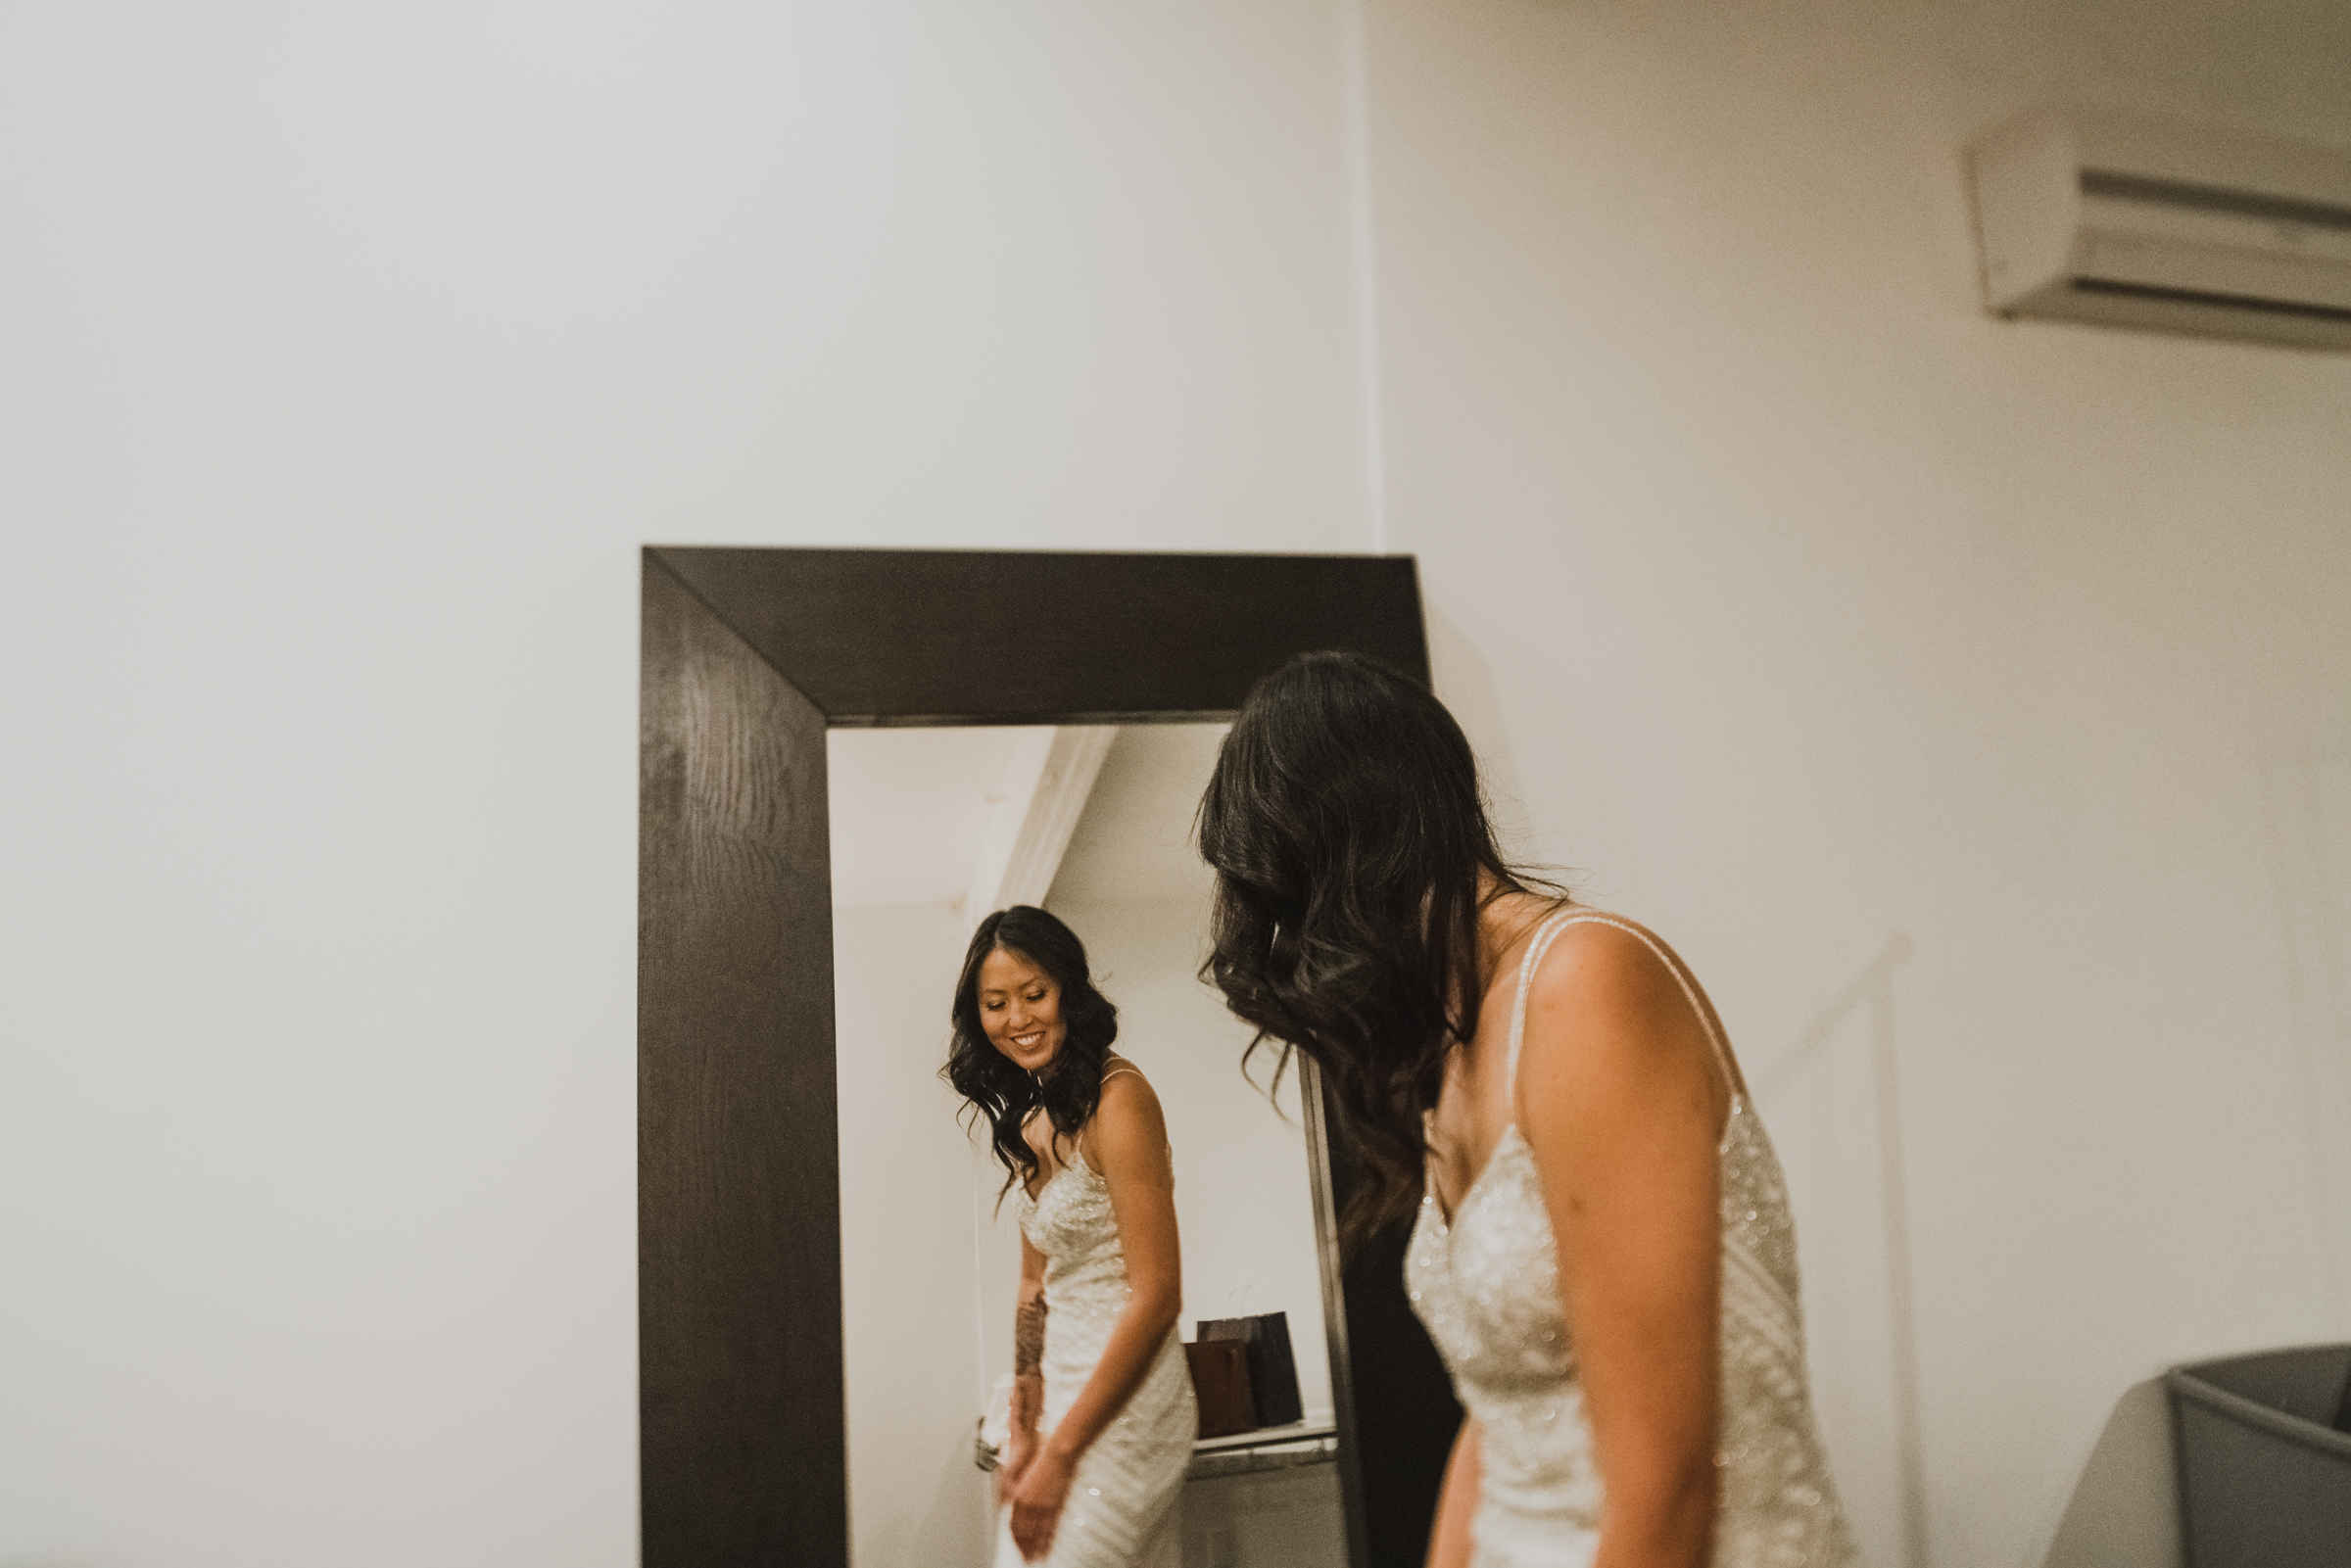 ©Isaiah + Taylor Photography - Big Door Studios Wedding, El Segundo, Los Angeles Wedding Photographer-10.jpg